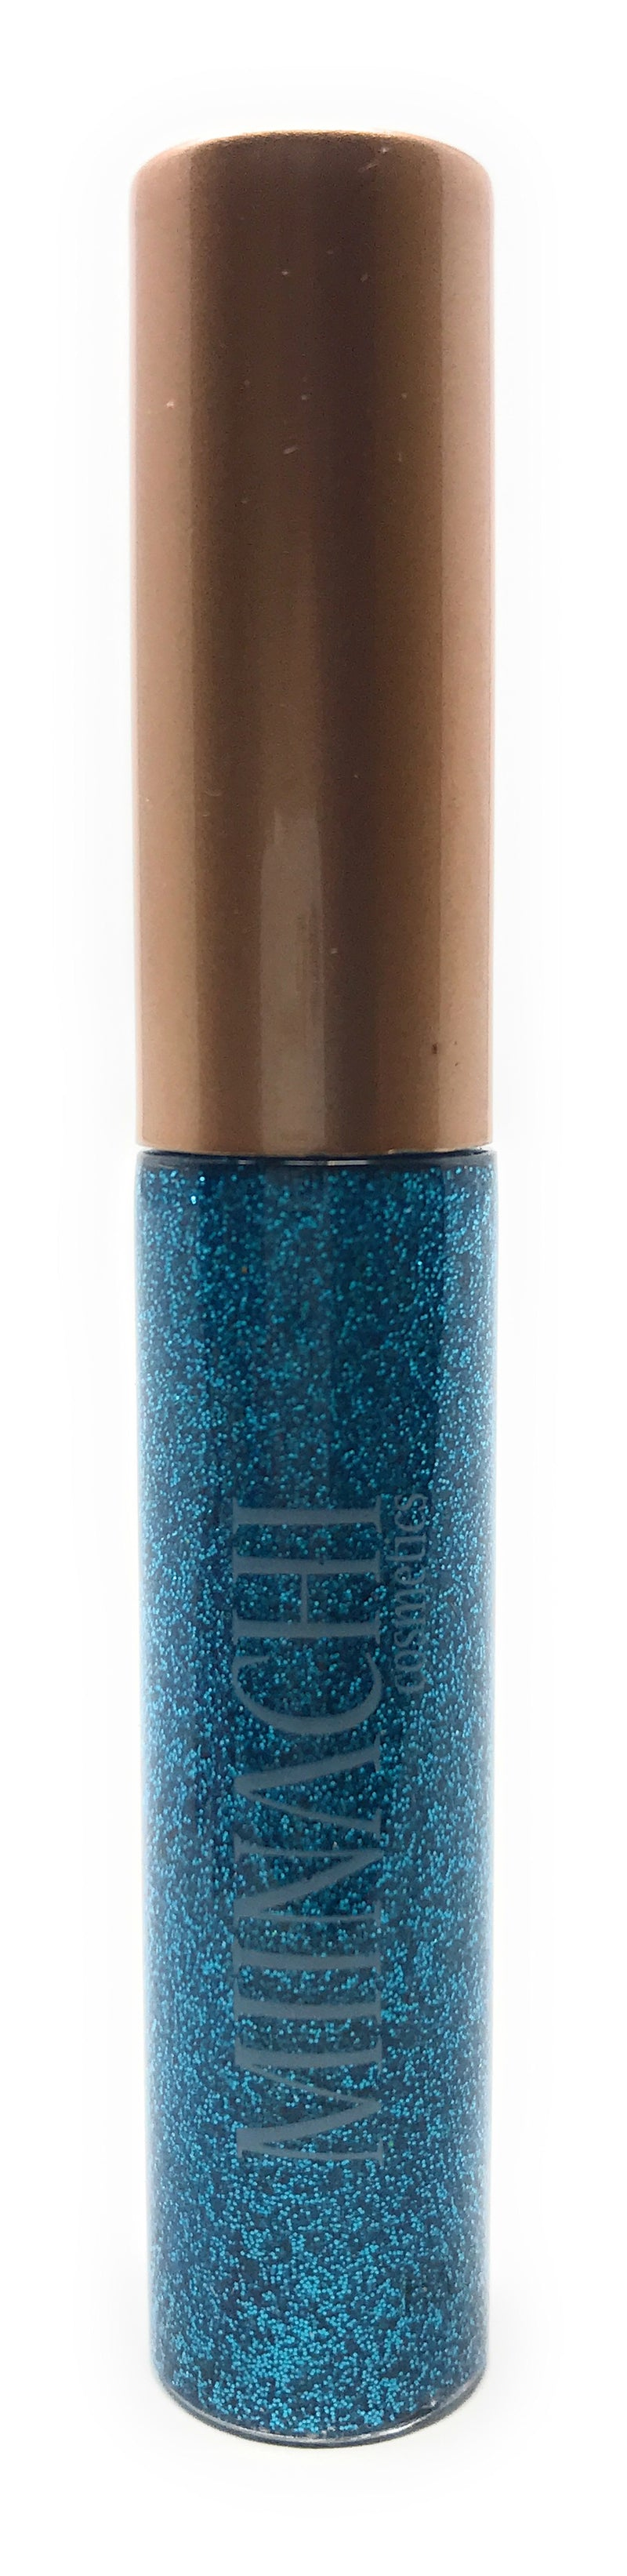 Blue Liquid Eye Liner in the Shade Aqua Cosmetic Grade Glitter Smudge Proof Water Proof No Glue Needed